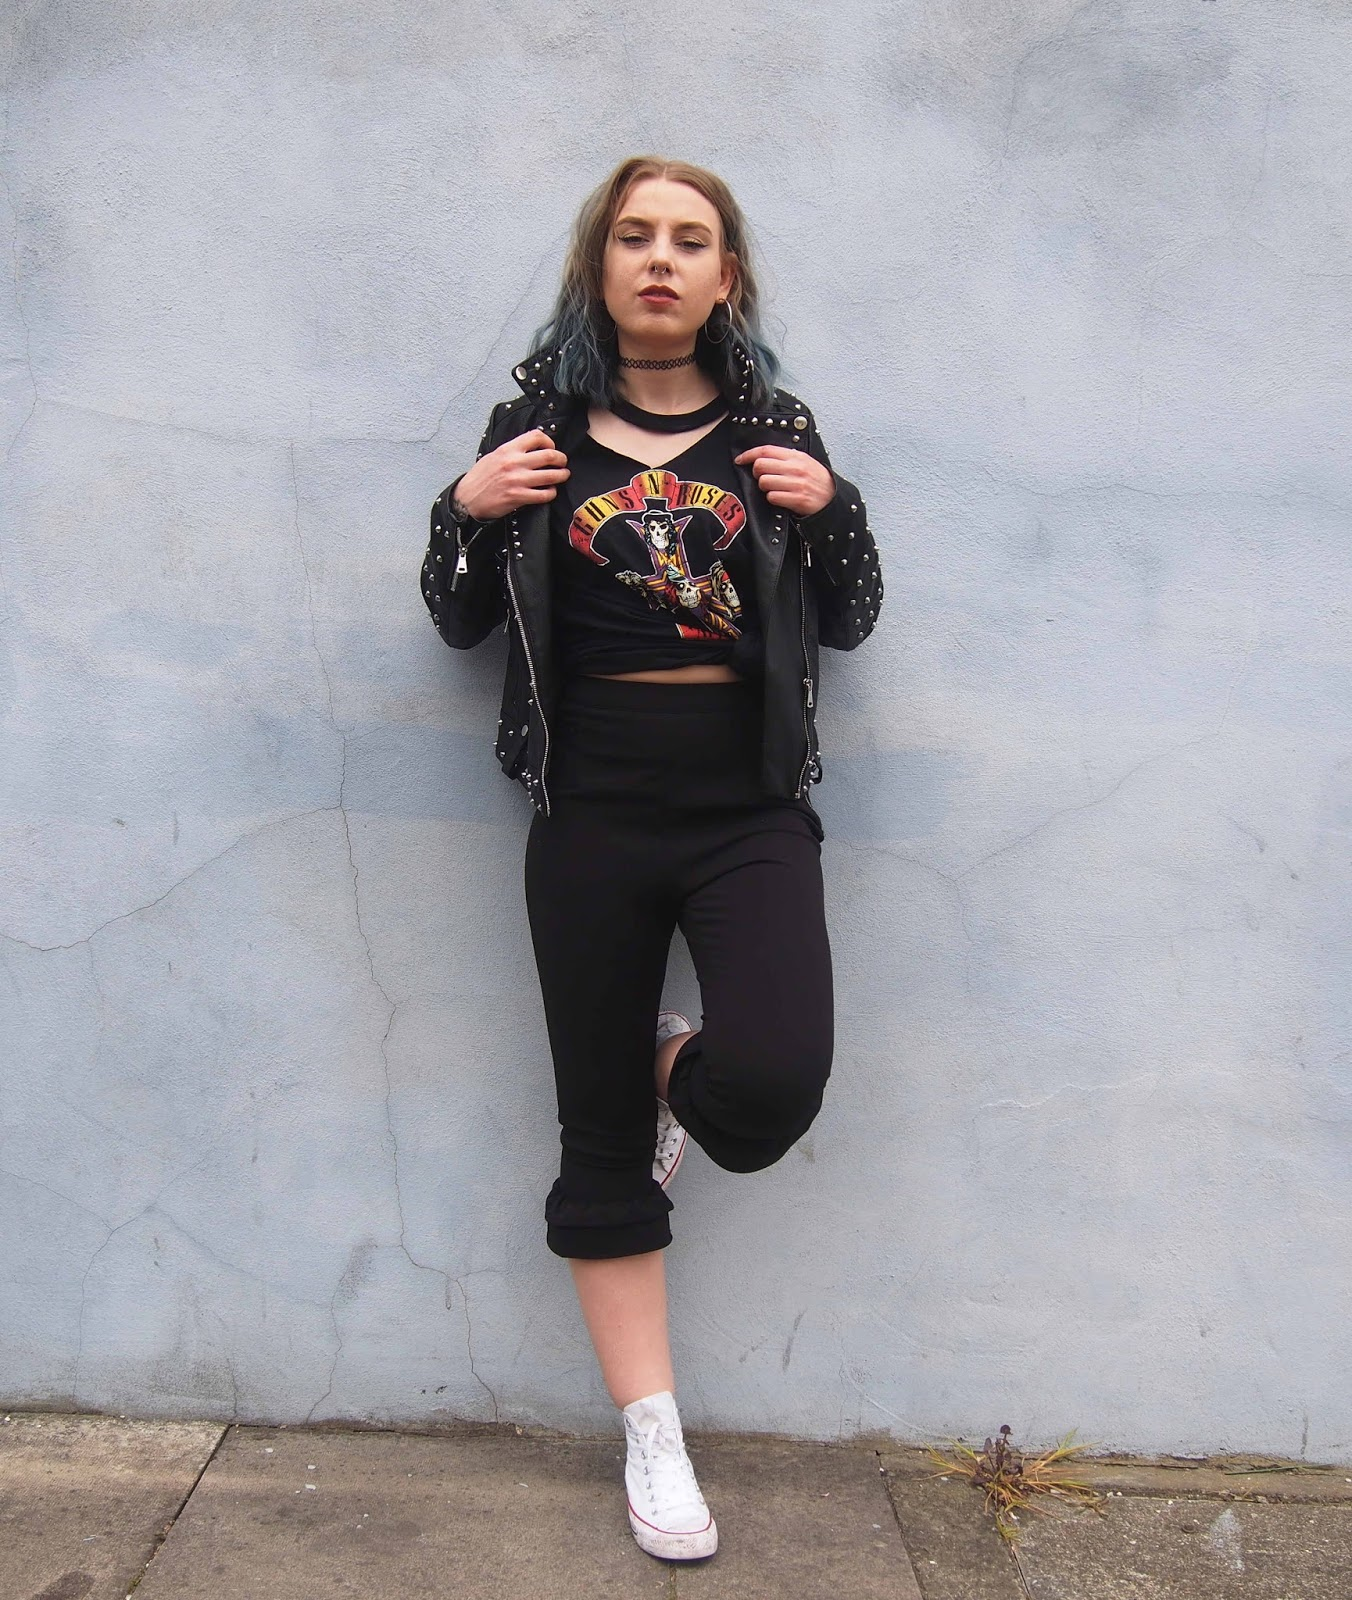 spring outfit, spring outfit ideas, fashion trend 2017, 2017 ss fashion trend, gunge outfit ideas, grunge outfits, embroidered leather jacket, band tee outfits, rock chick, rock chick outfit, rock chick style